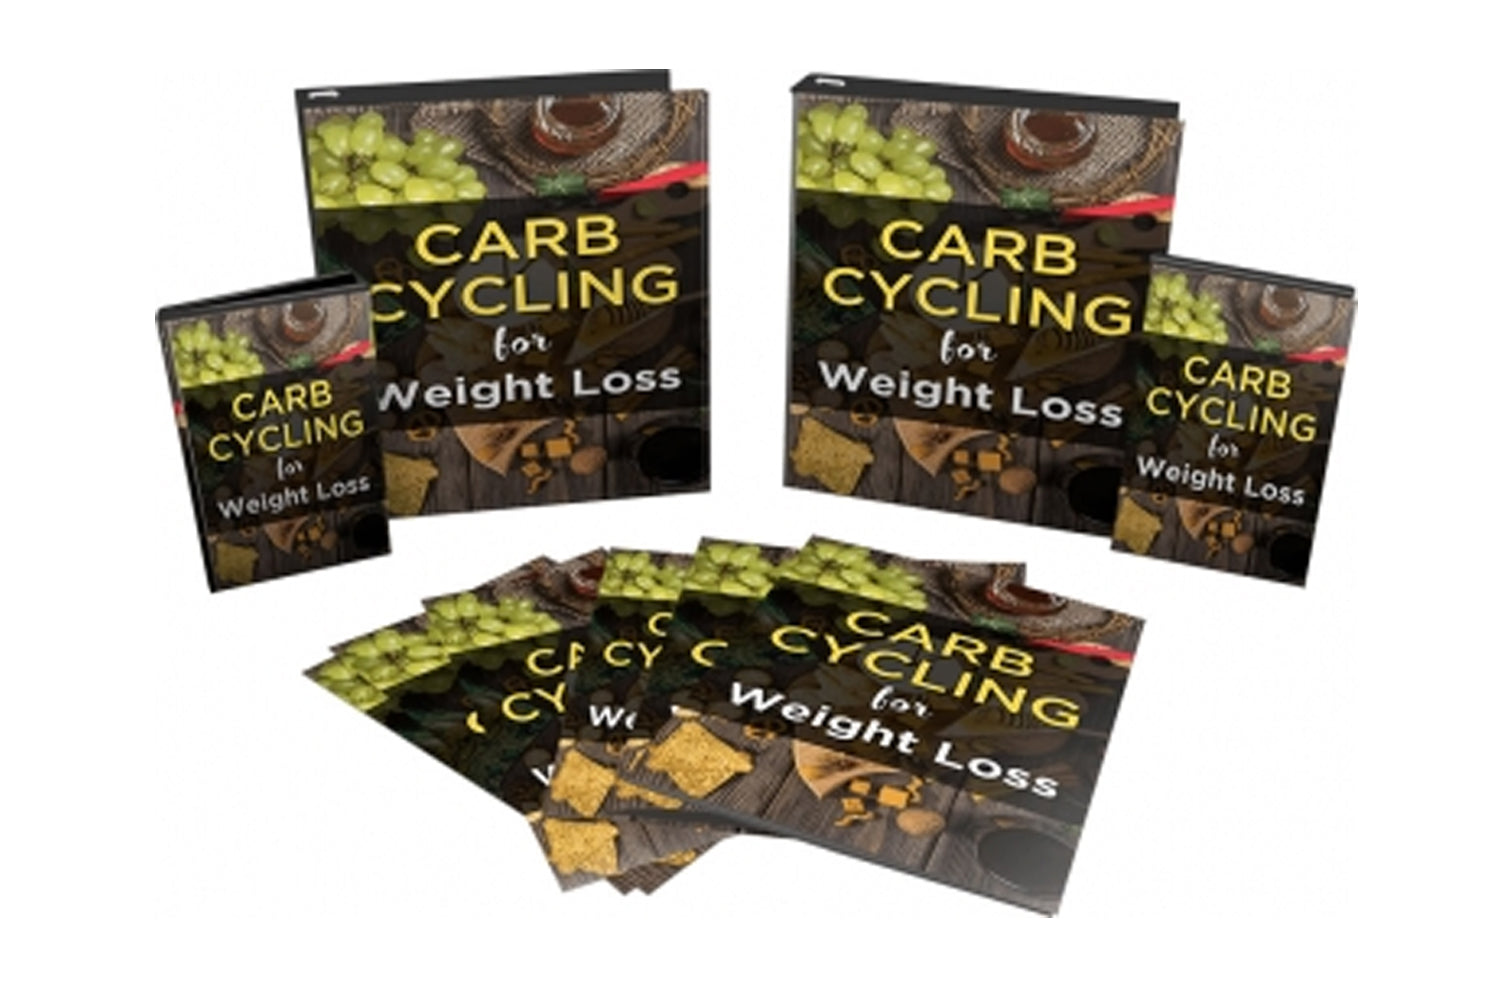 Carb Cycling for Weight Loss Video Upgrade, This diet video course reveals everything you need to know about Carb Cycling